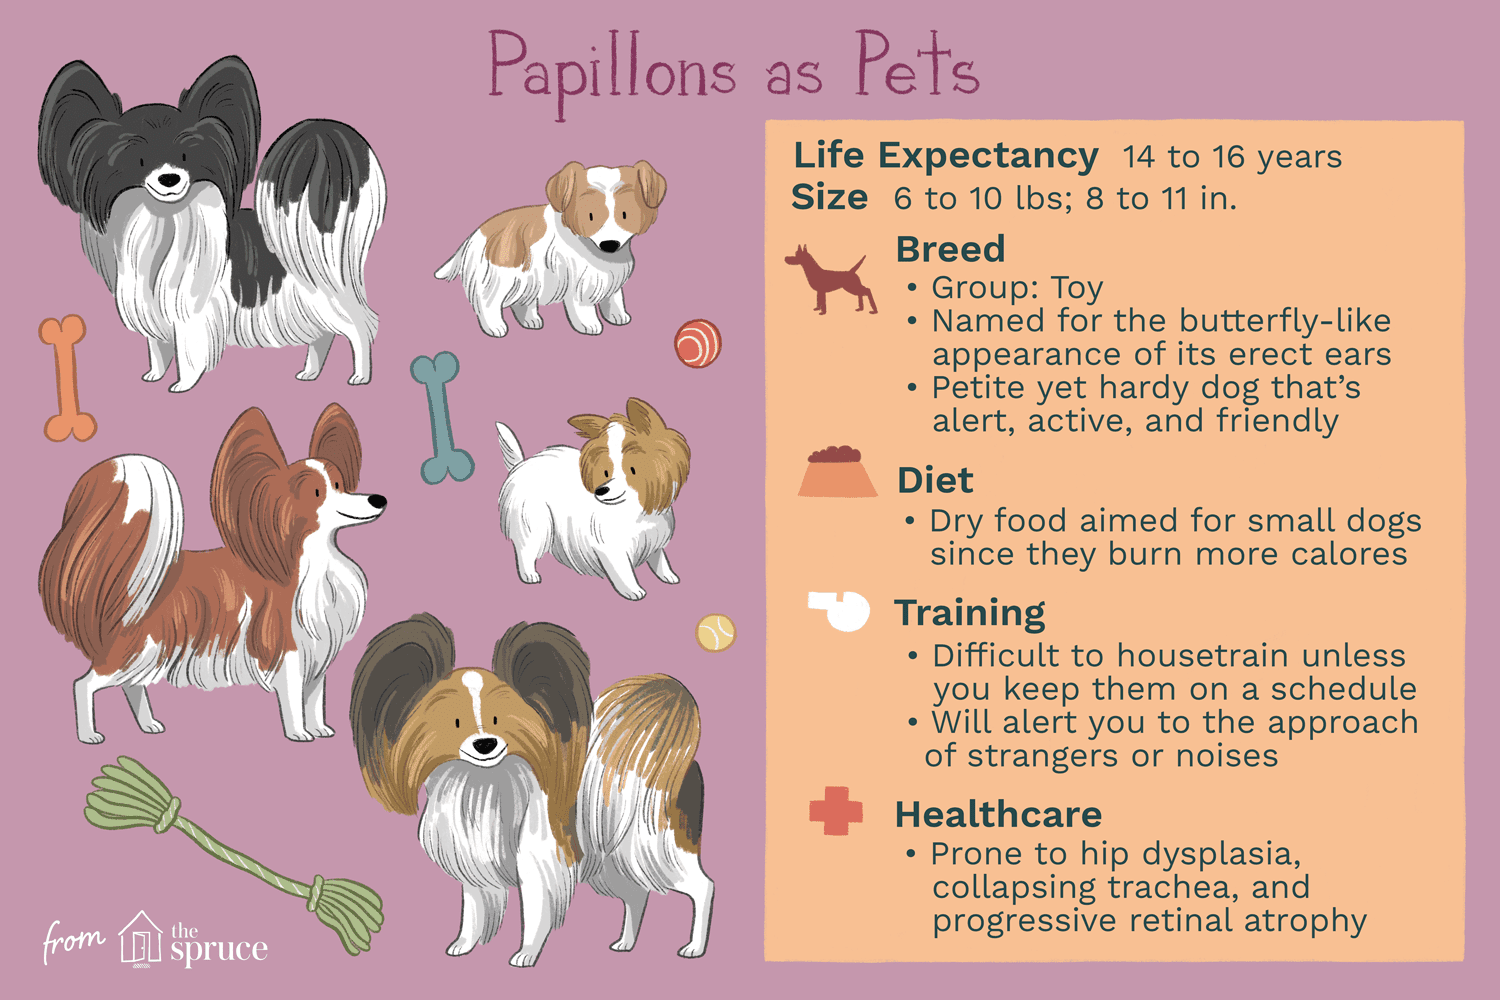 papillons as pets illustration